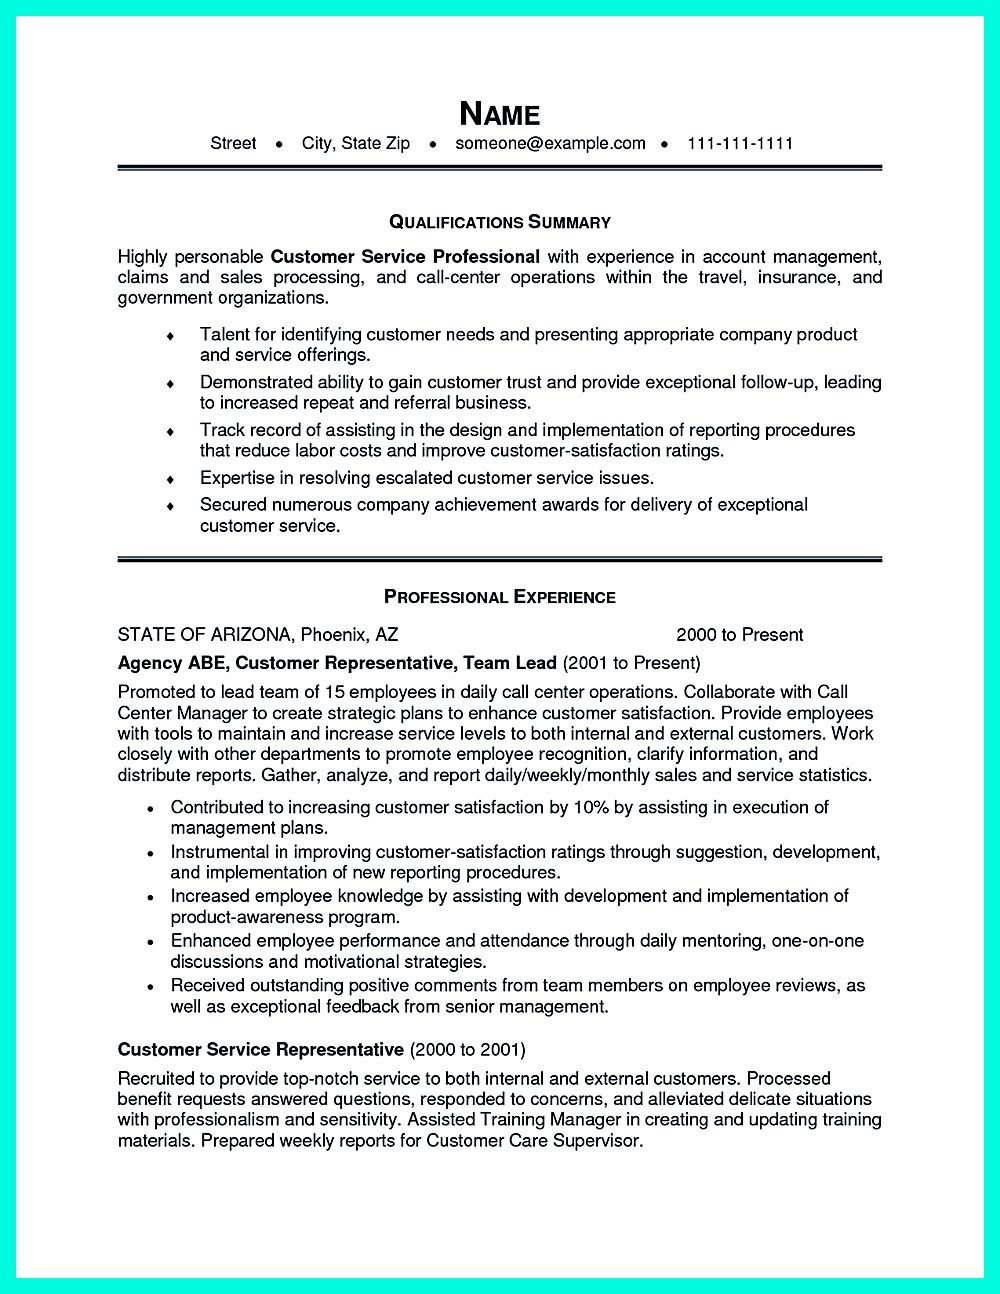 CSR resume or Customer Service Representative resume include the – Resume for Customer Service